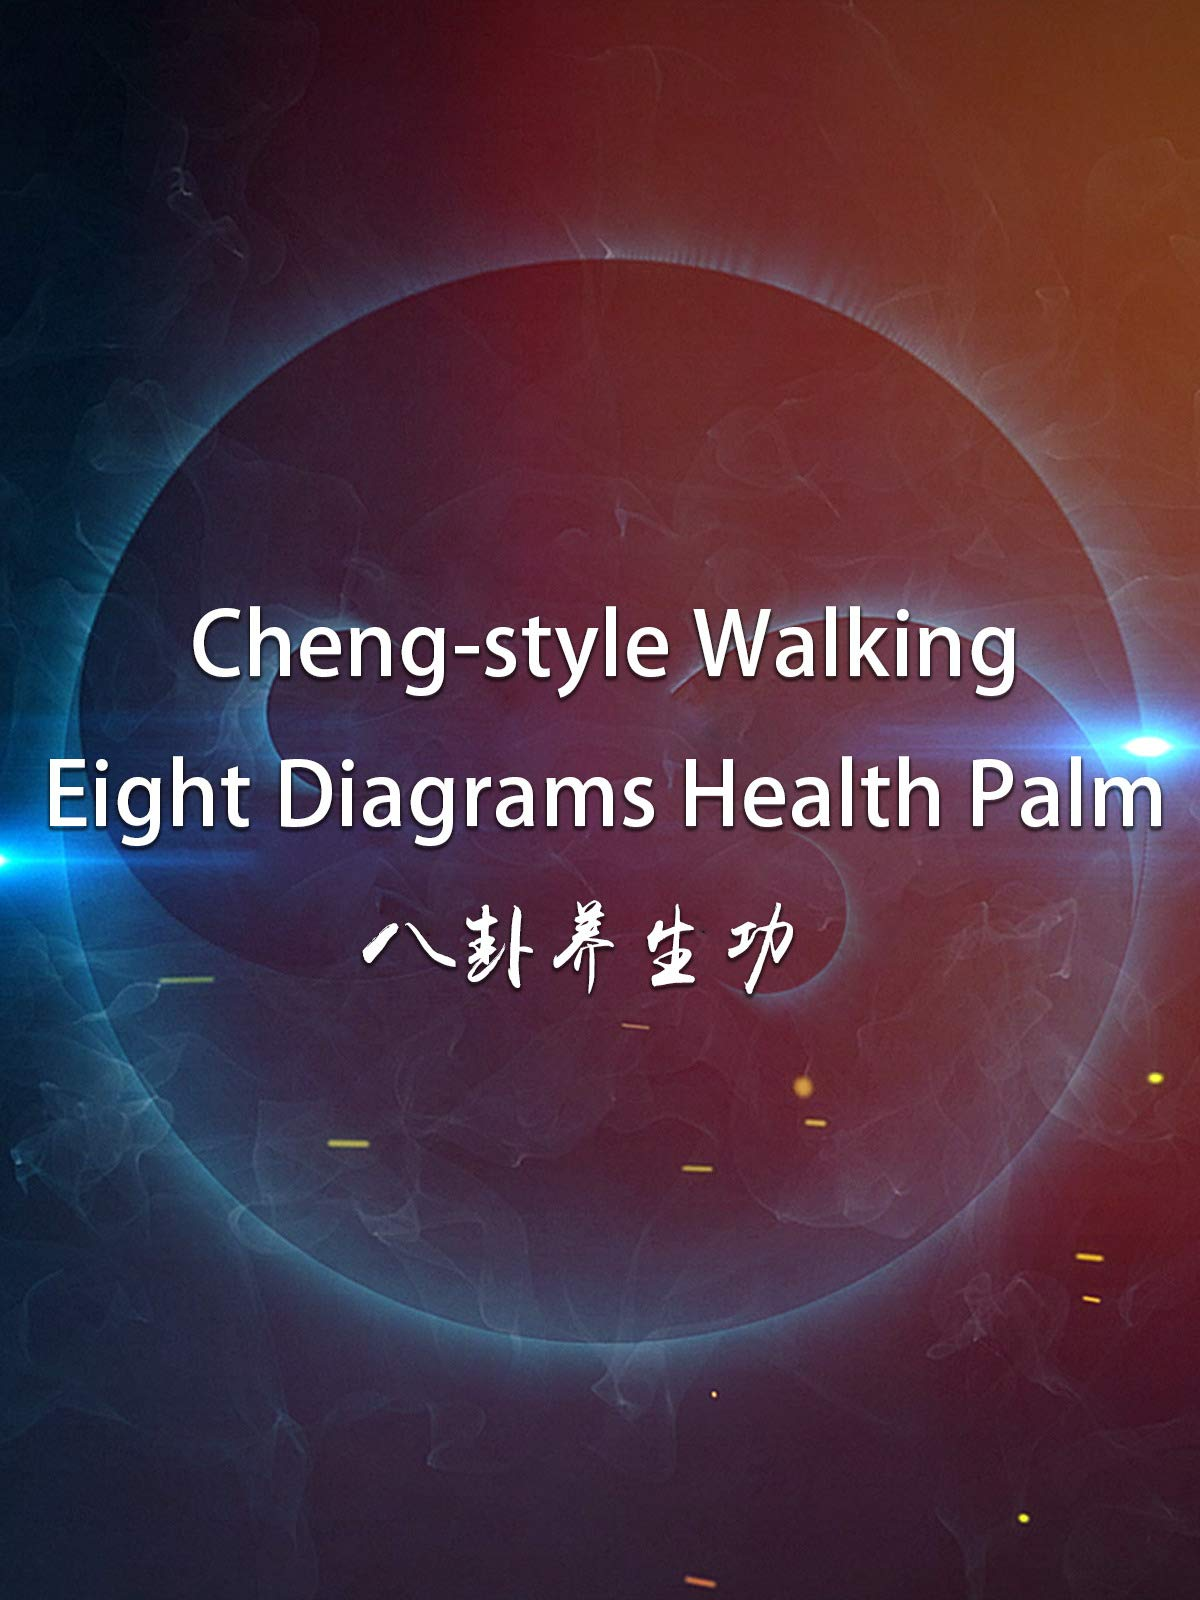 Eight Diagrams Health Palm